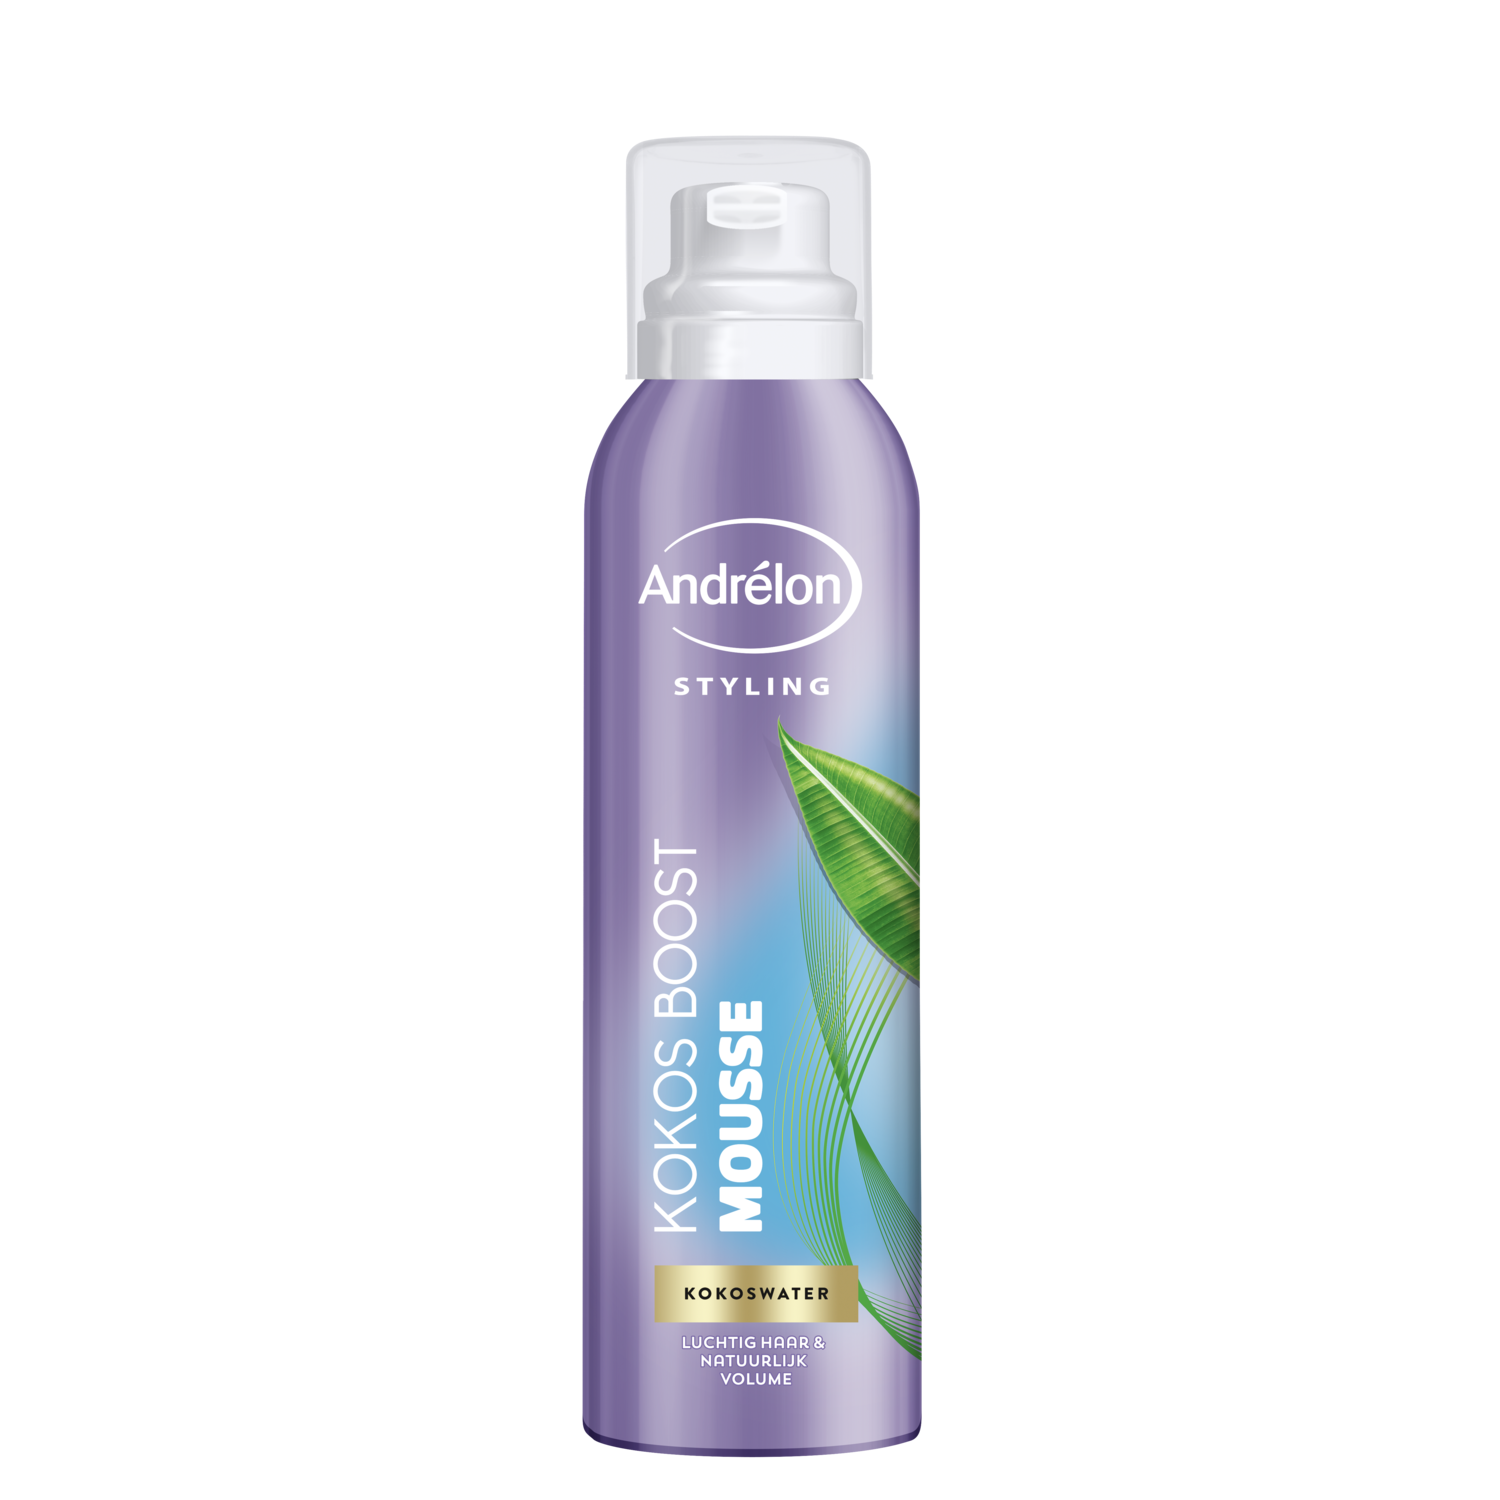 Andrelon SPECIAL kokos boost volume mousse 200ml 8717163682517